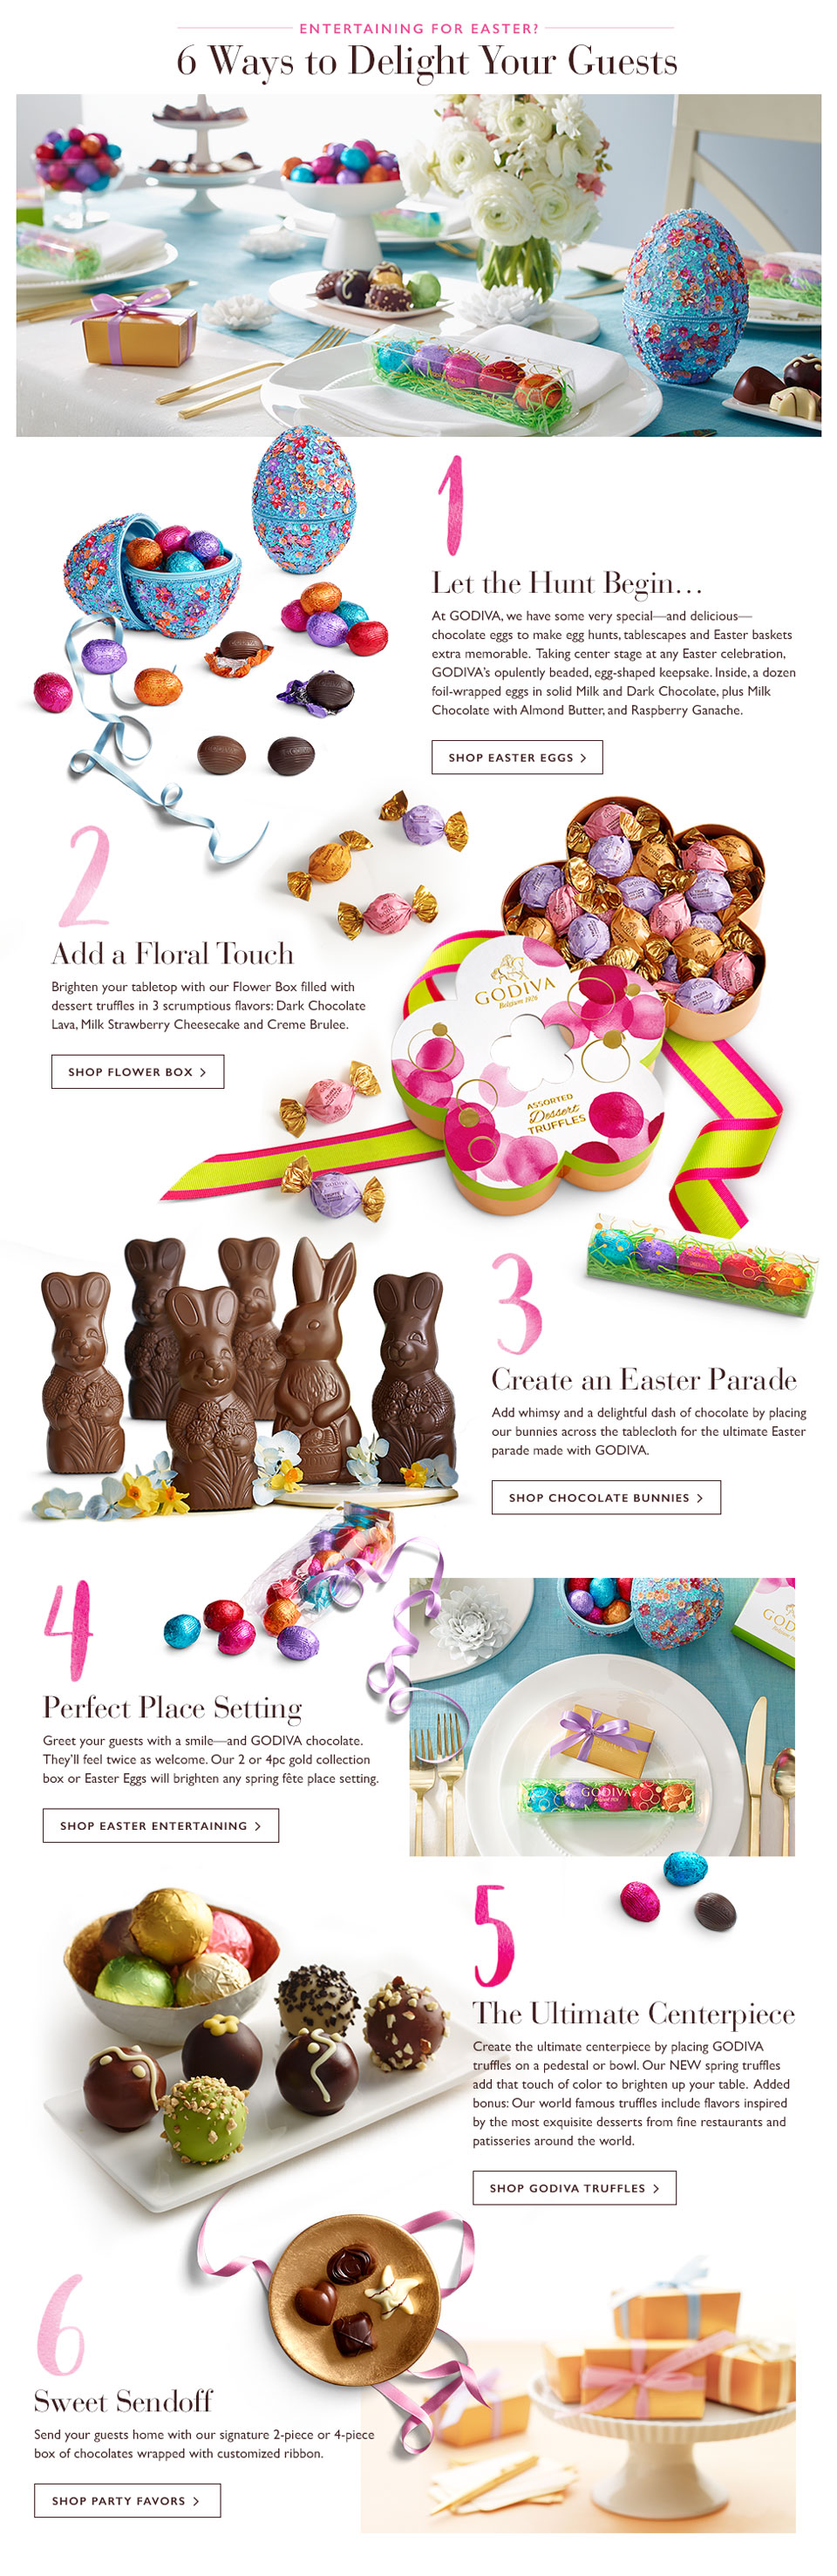 Decorate Your Easter Table with GODIVA Chocolate Eggs and Bunnies